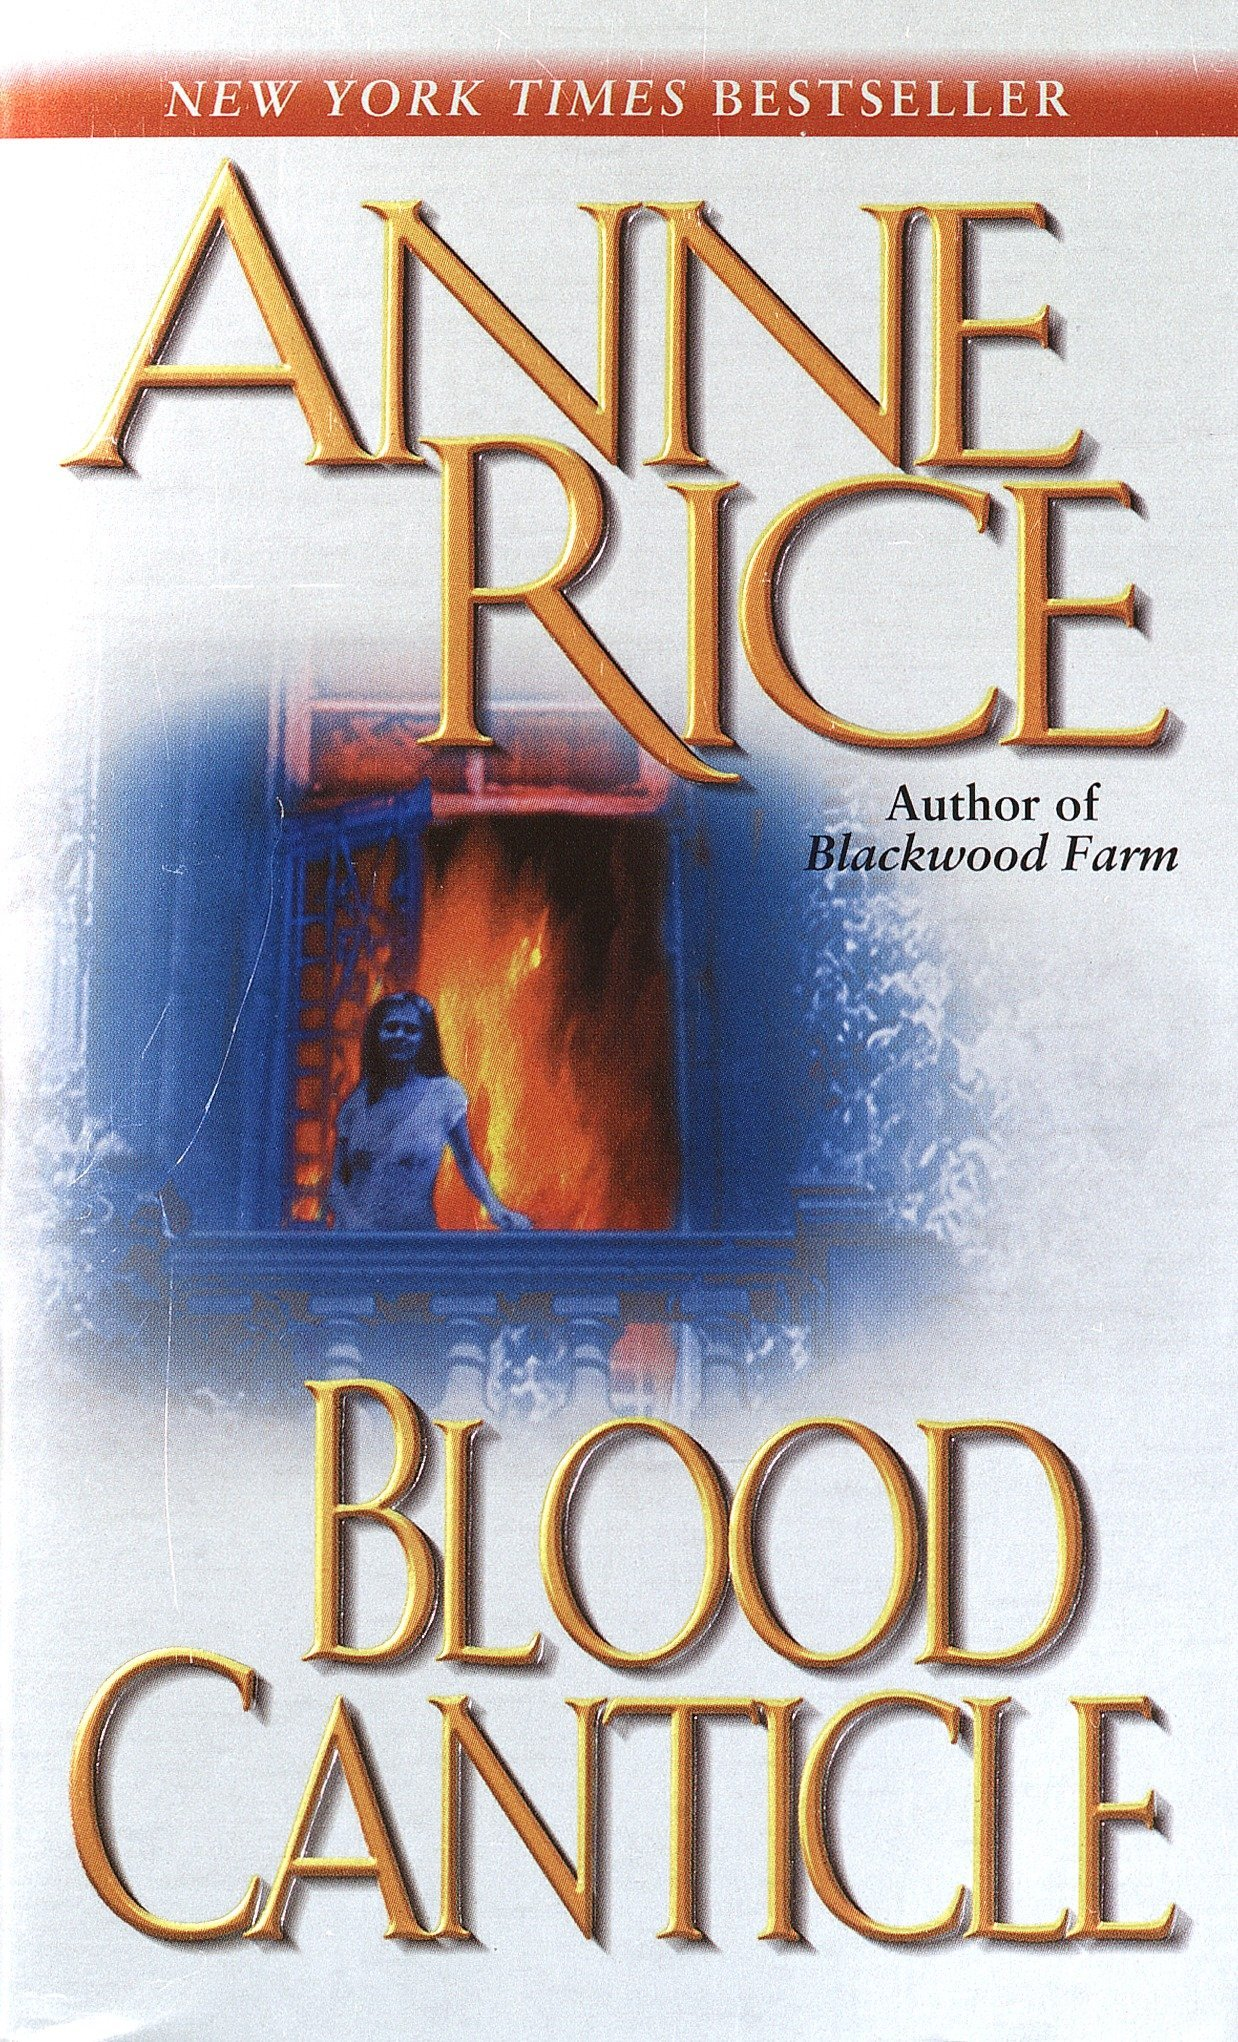 Blood Canticle Vampire Chronicles Anne product image